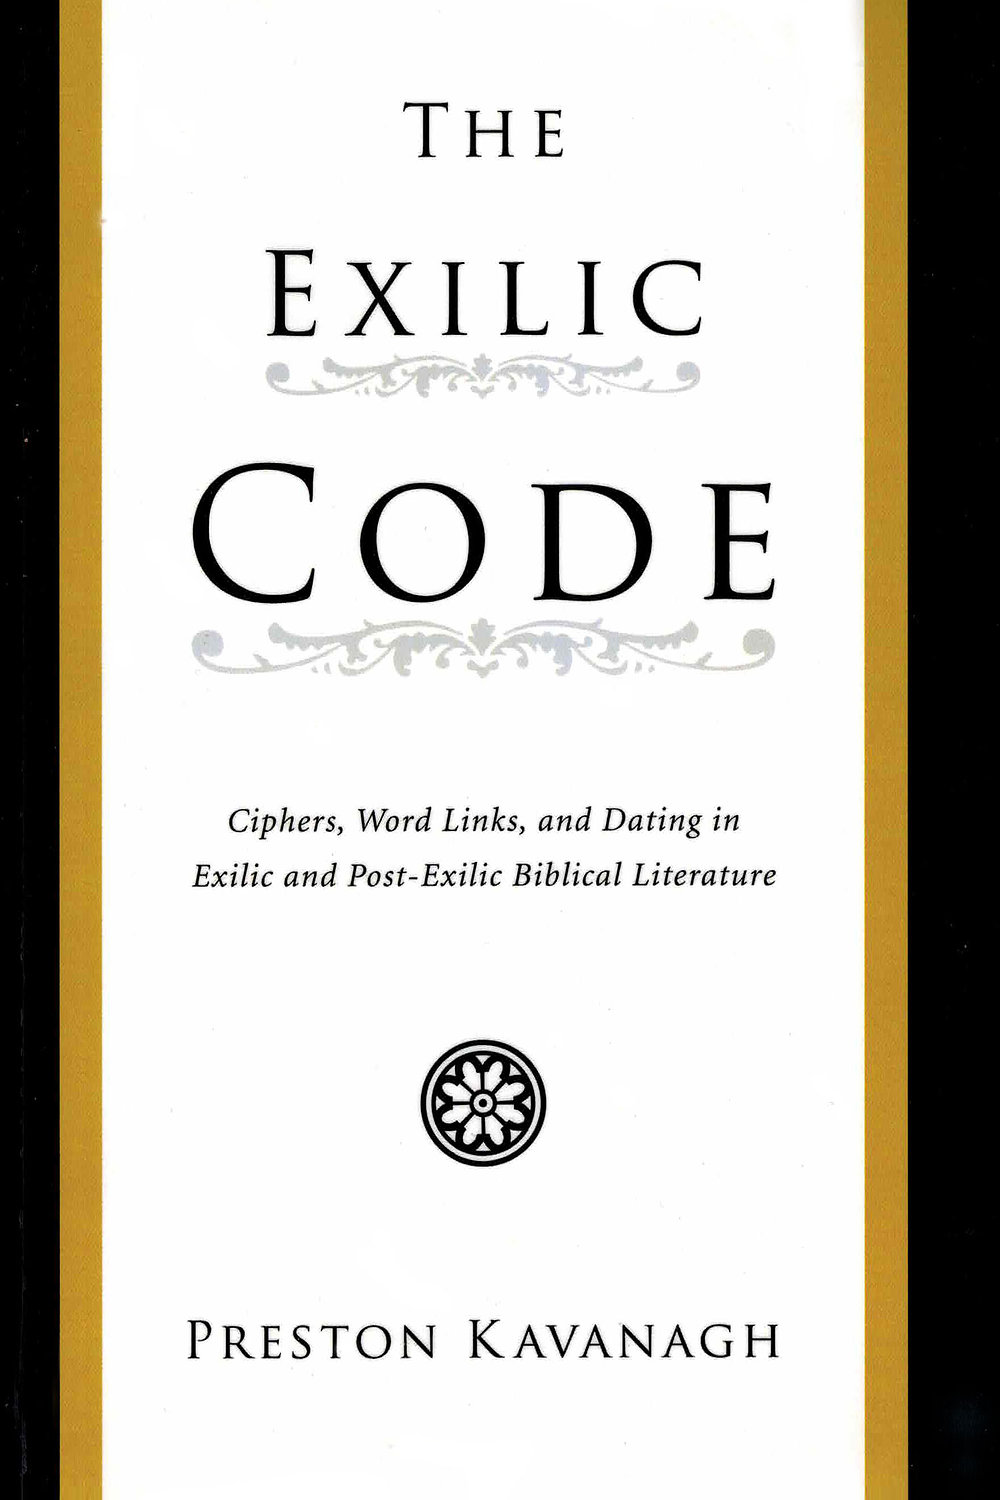 The Exilic Code